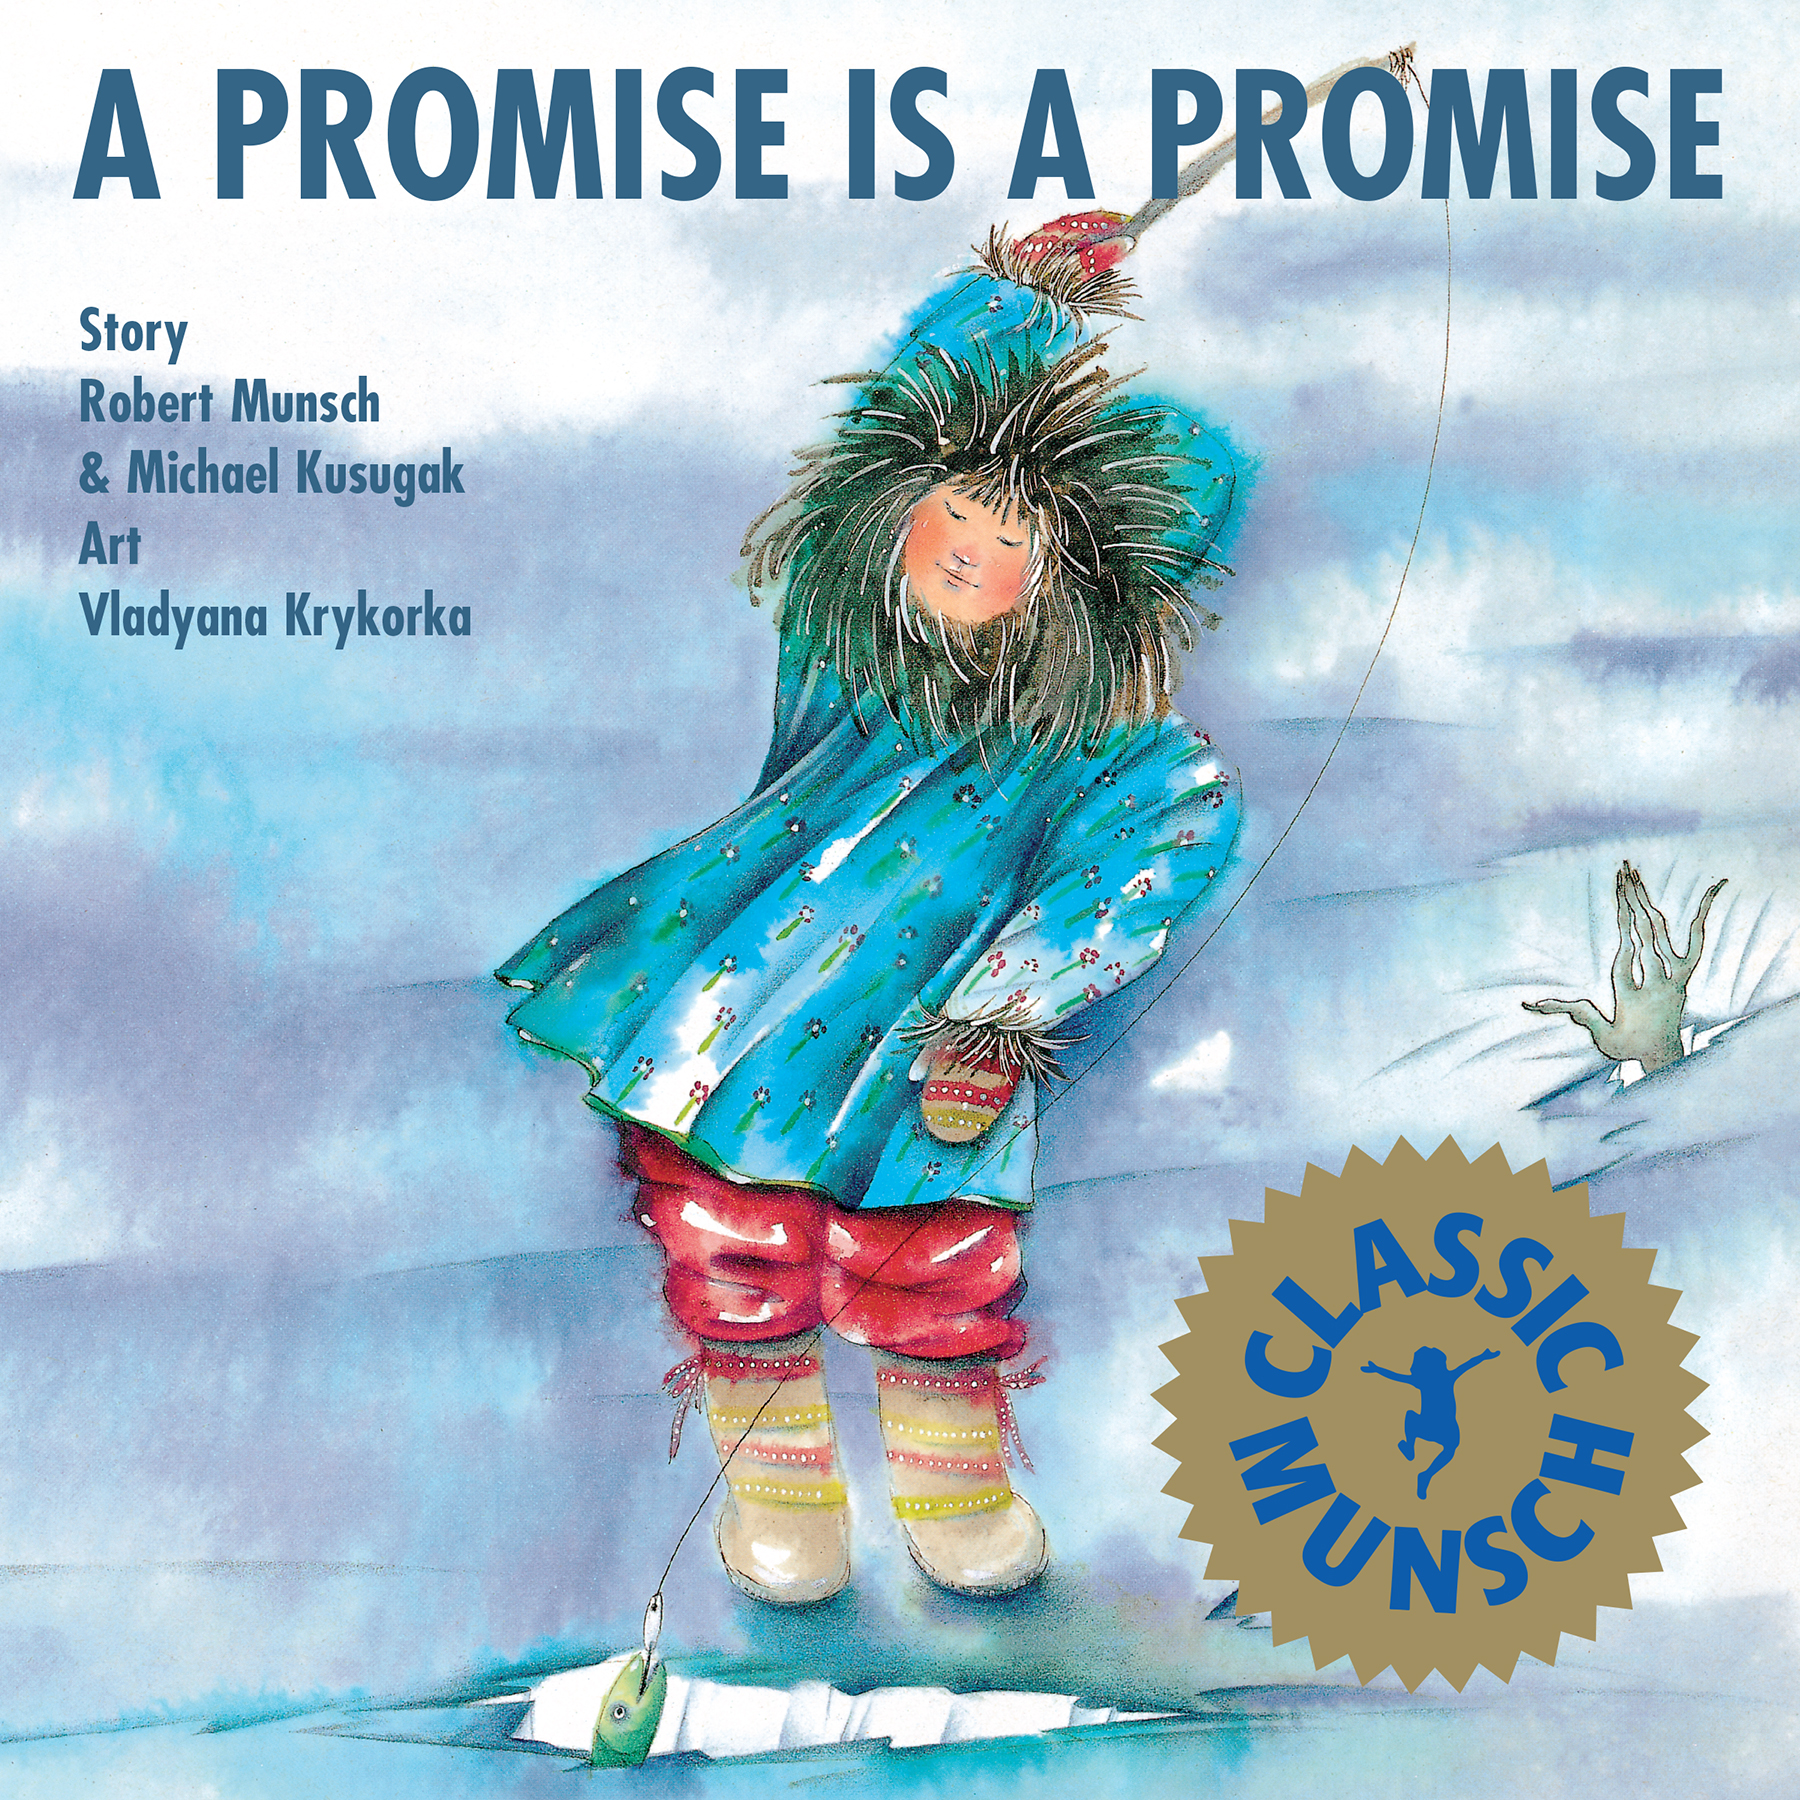 A Promise is a Promise by Robert Munsch and Michael Arvaarluk Kusugak, illustrated by Vladyana Krykorka